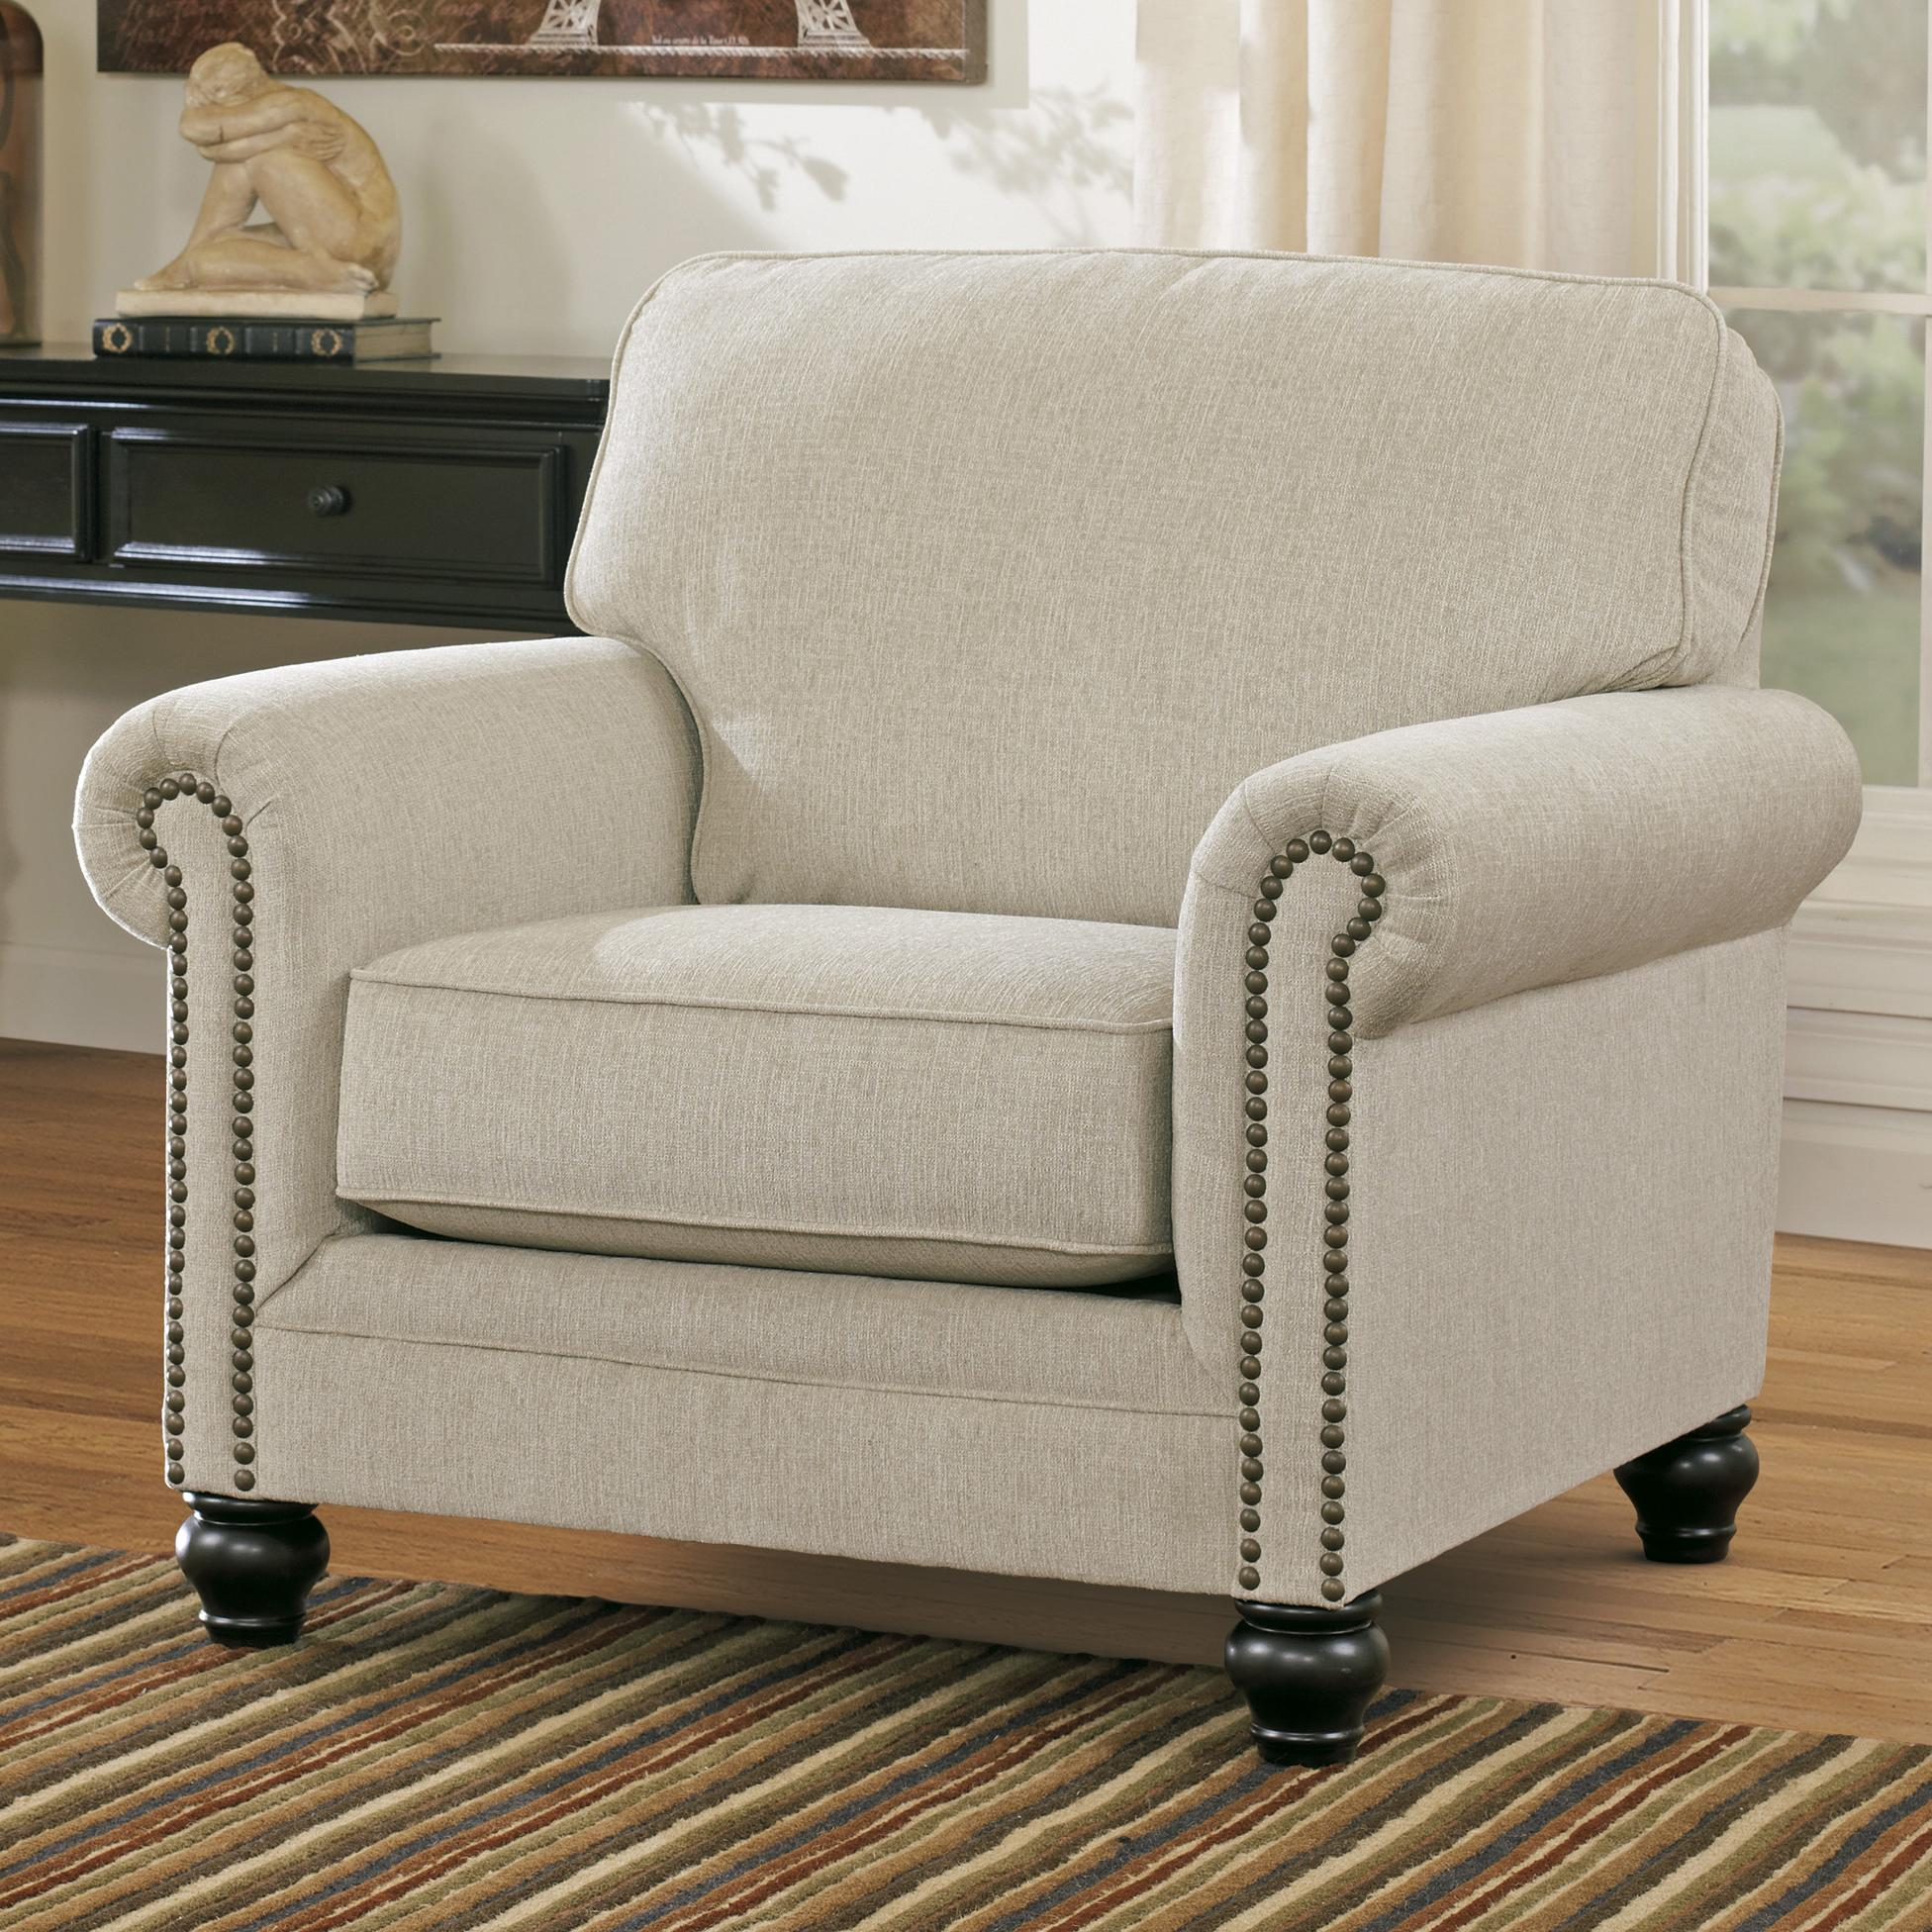 Ashley Signature Design Milari Linen Transitional Chair with